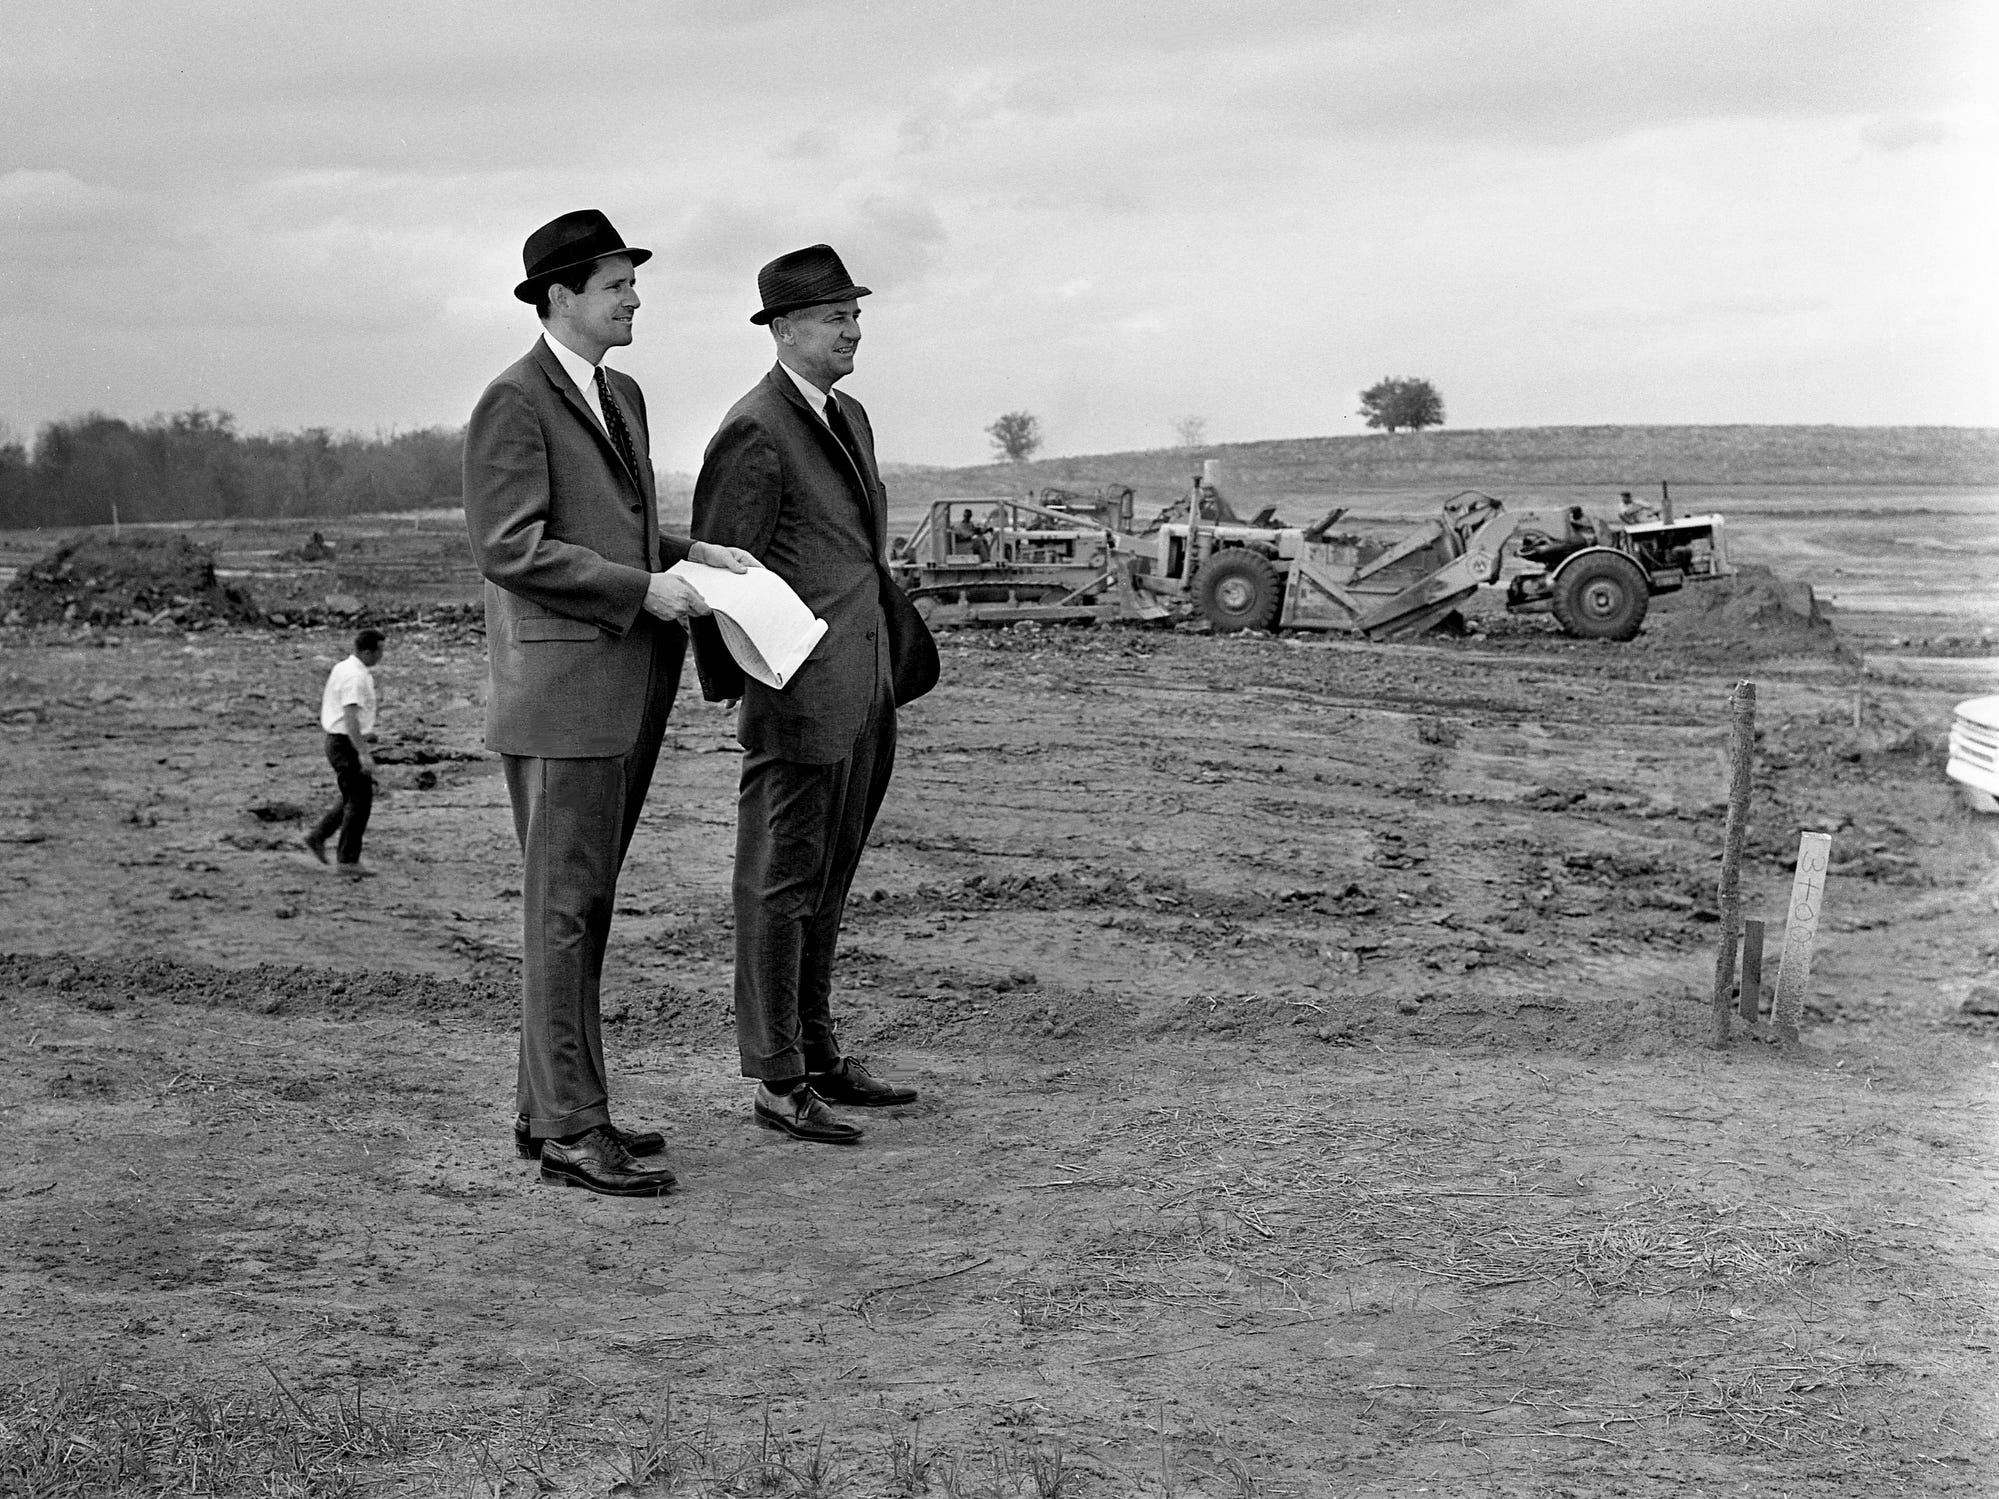 Charles M. Piggott, left, president of Pacific Car and Foundry Co., and G.M. Lahmon, vice president and treasurer, check on development at the construction site of the company's truck manufacturing plant on Anderson Lane in Madison on Oct. 17, 1968. They expect to start producing heavy-duty over-the-road Peterbilt trucks with 400 local employees in its plant July 1, 1969.